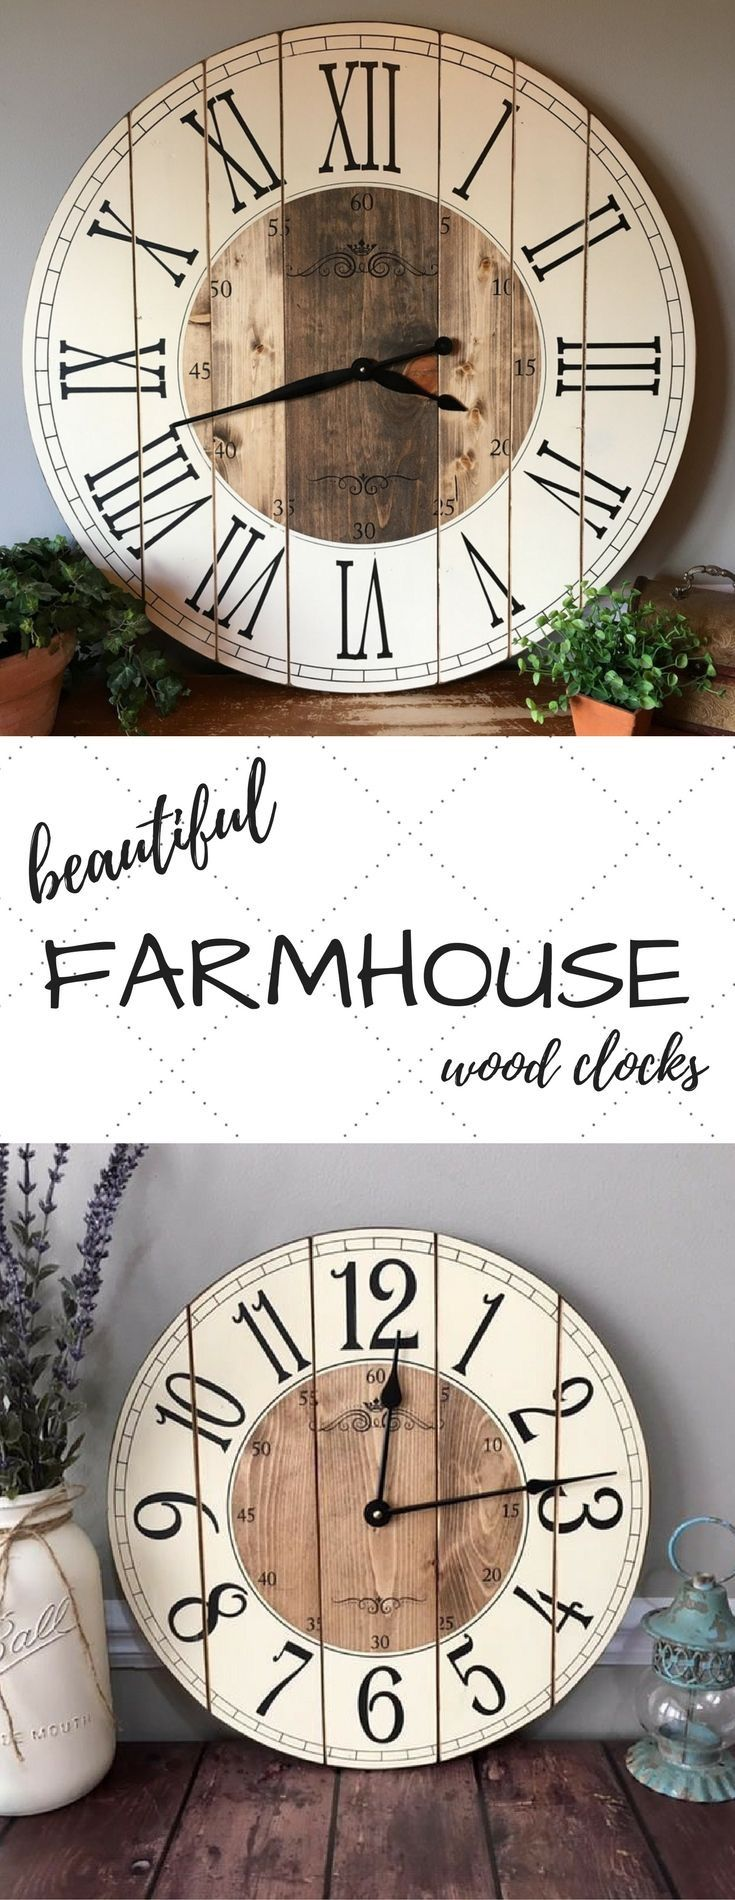 Best 25 farmhouse wall clocks ideas on pinterest wall clock would love something like this for somewhere in the houserge farmhouse clocksrustic wall clocksfarmhouse amipublicfo Gallery